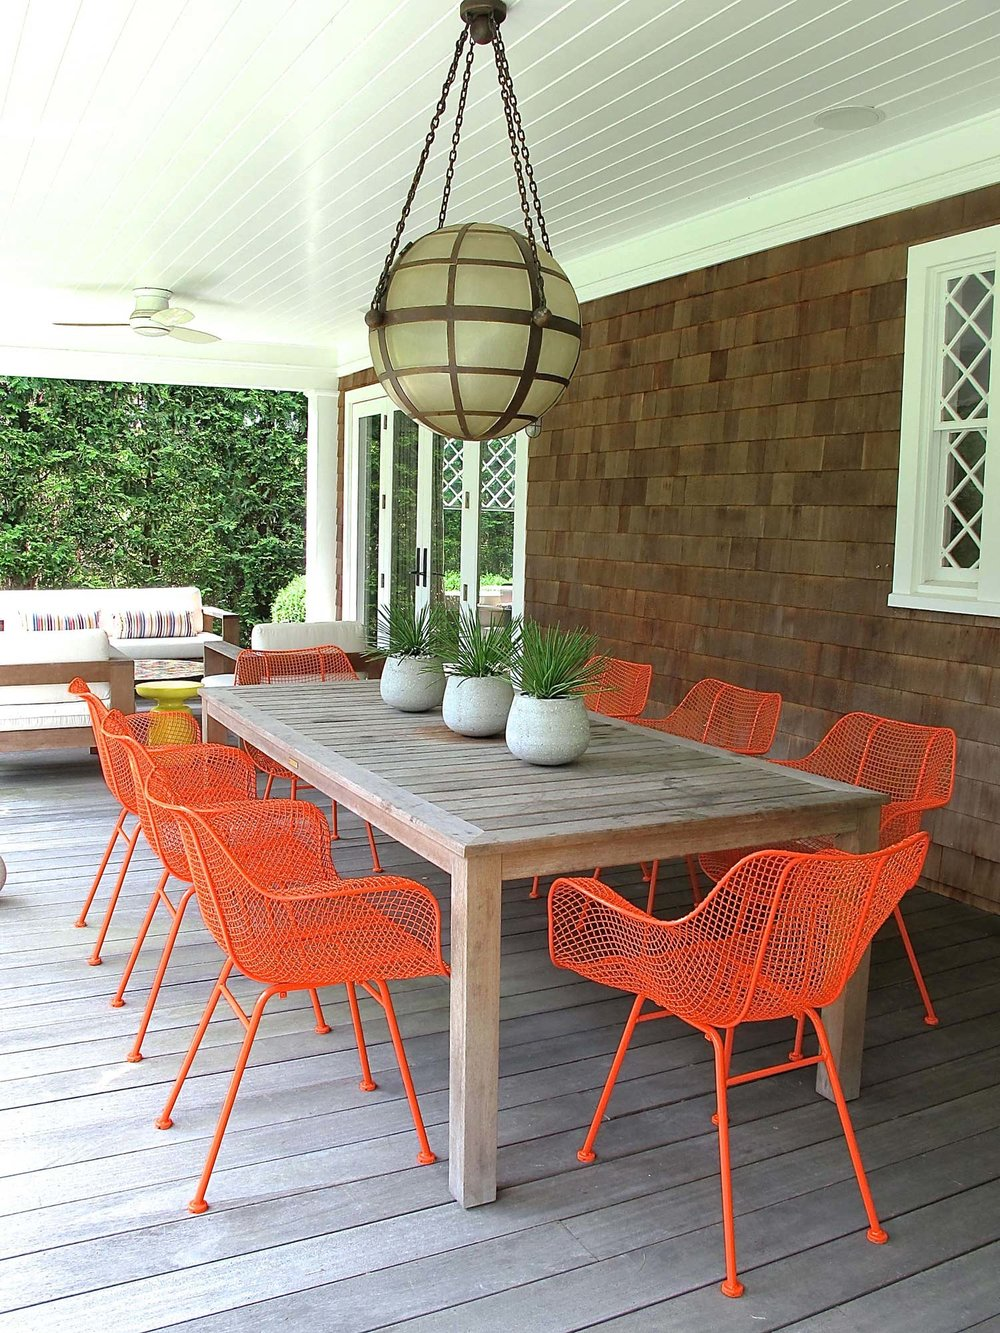 5) Trade out that old patio furniture for some new coastal or modern designs! -